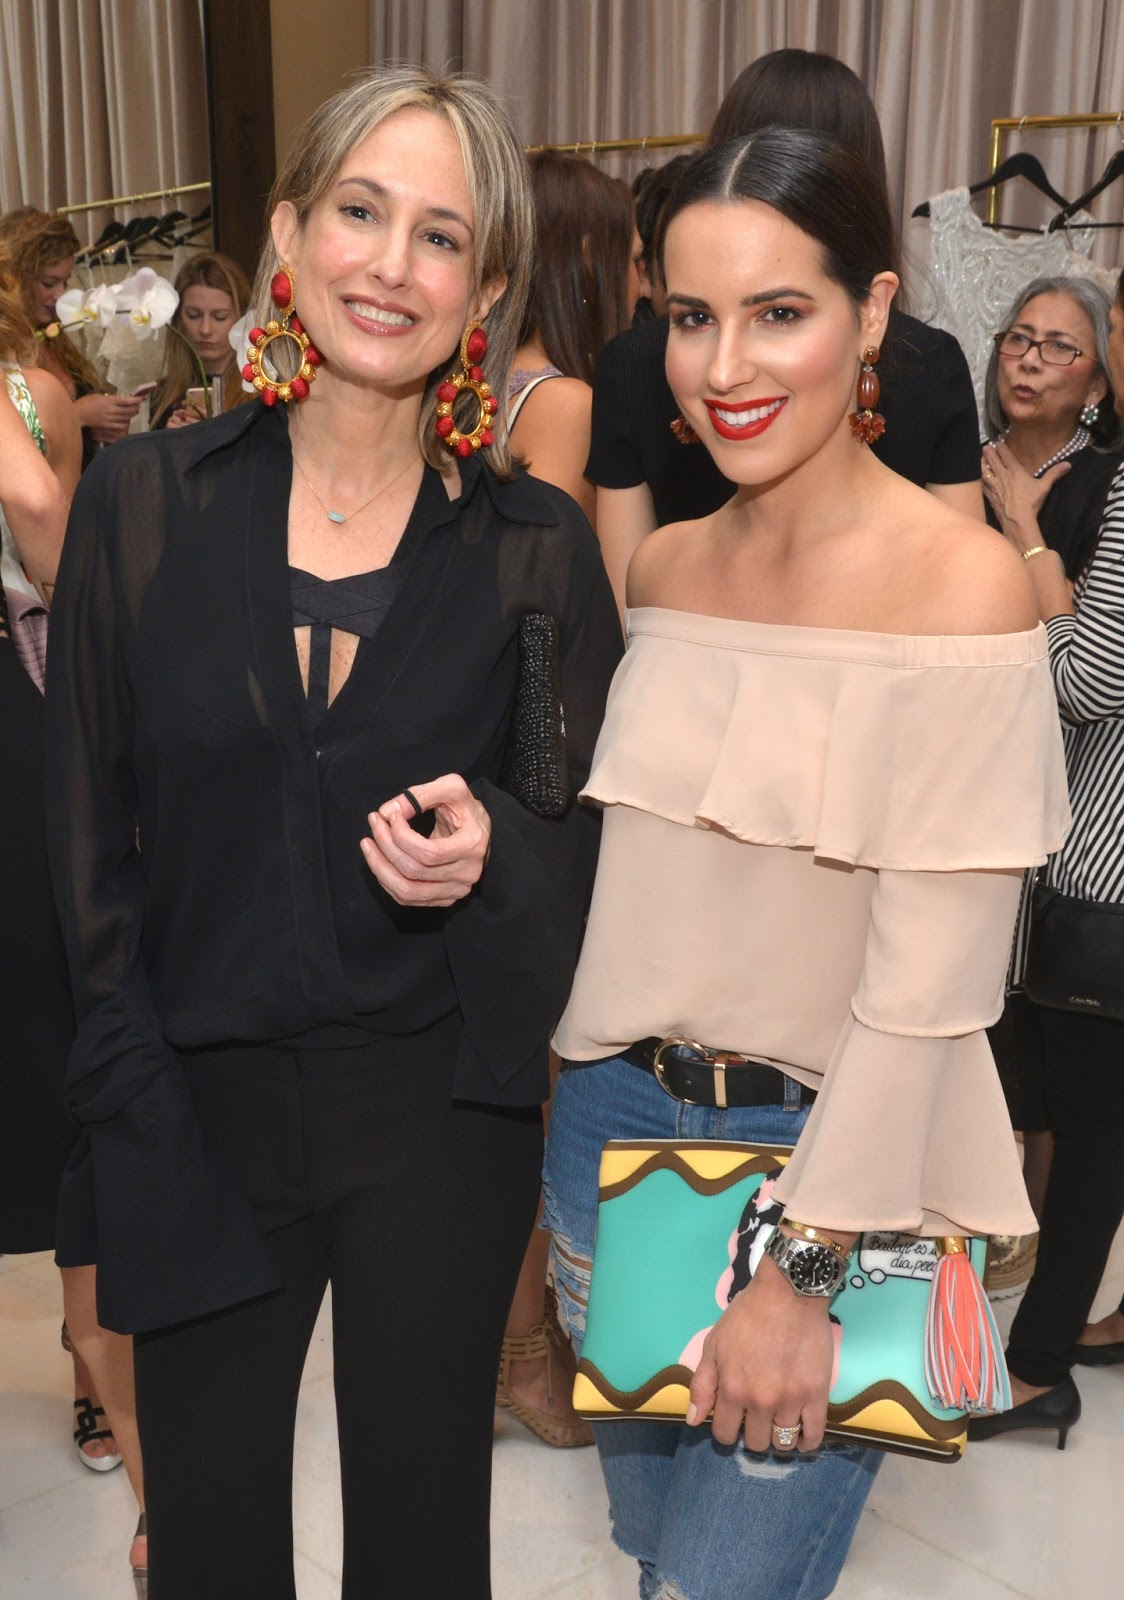 Silvia Tcherassi and Fashion Blogger Kelly Saks Guerra attend grand opening of Coral Gables Atelier